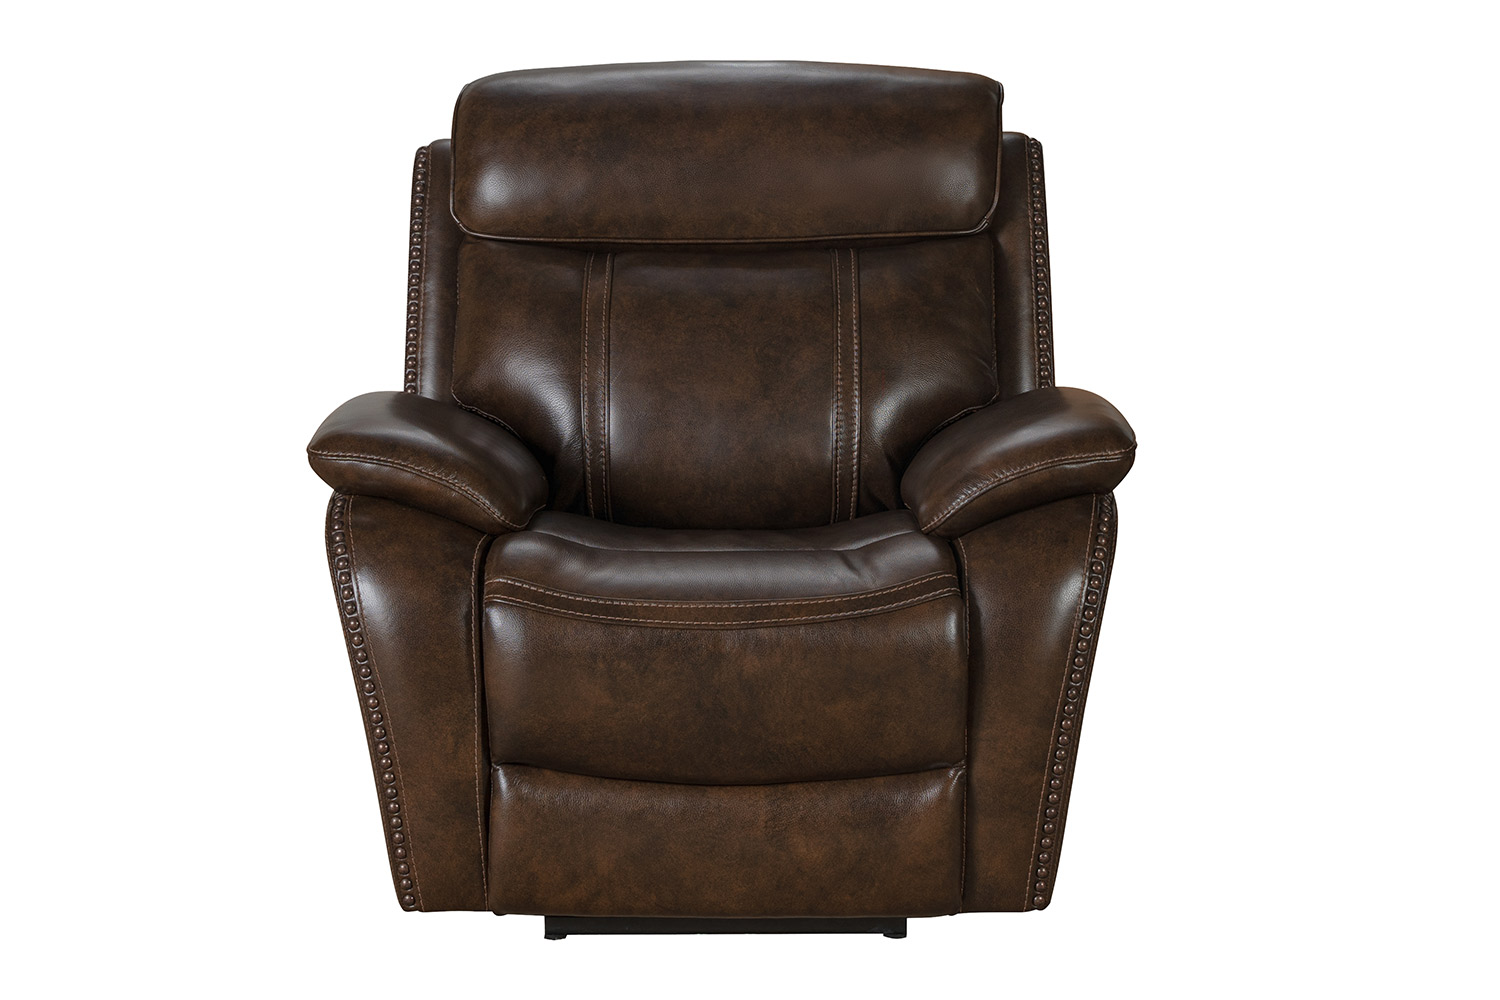 Barcalounger Sandover Power Recliner Chair with Power Head Rest and Lumbar - Tri-Tone Chocolate/Leather match